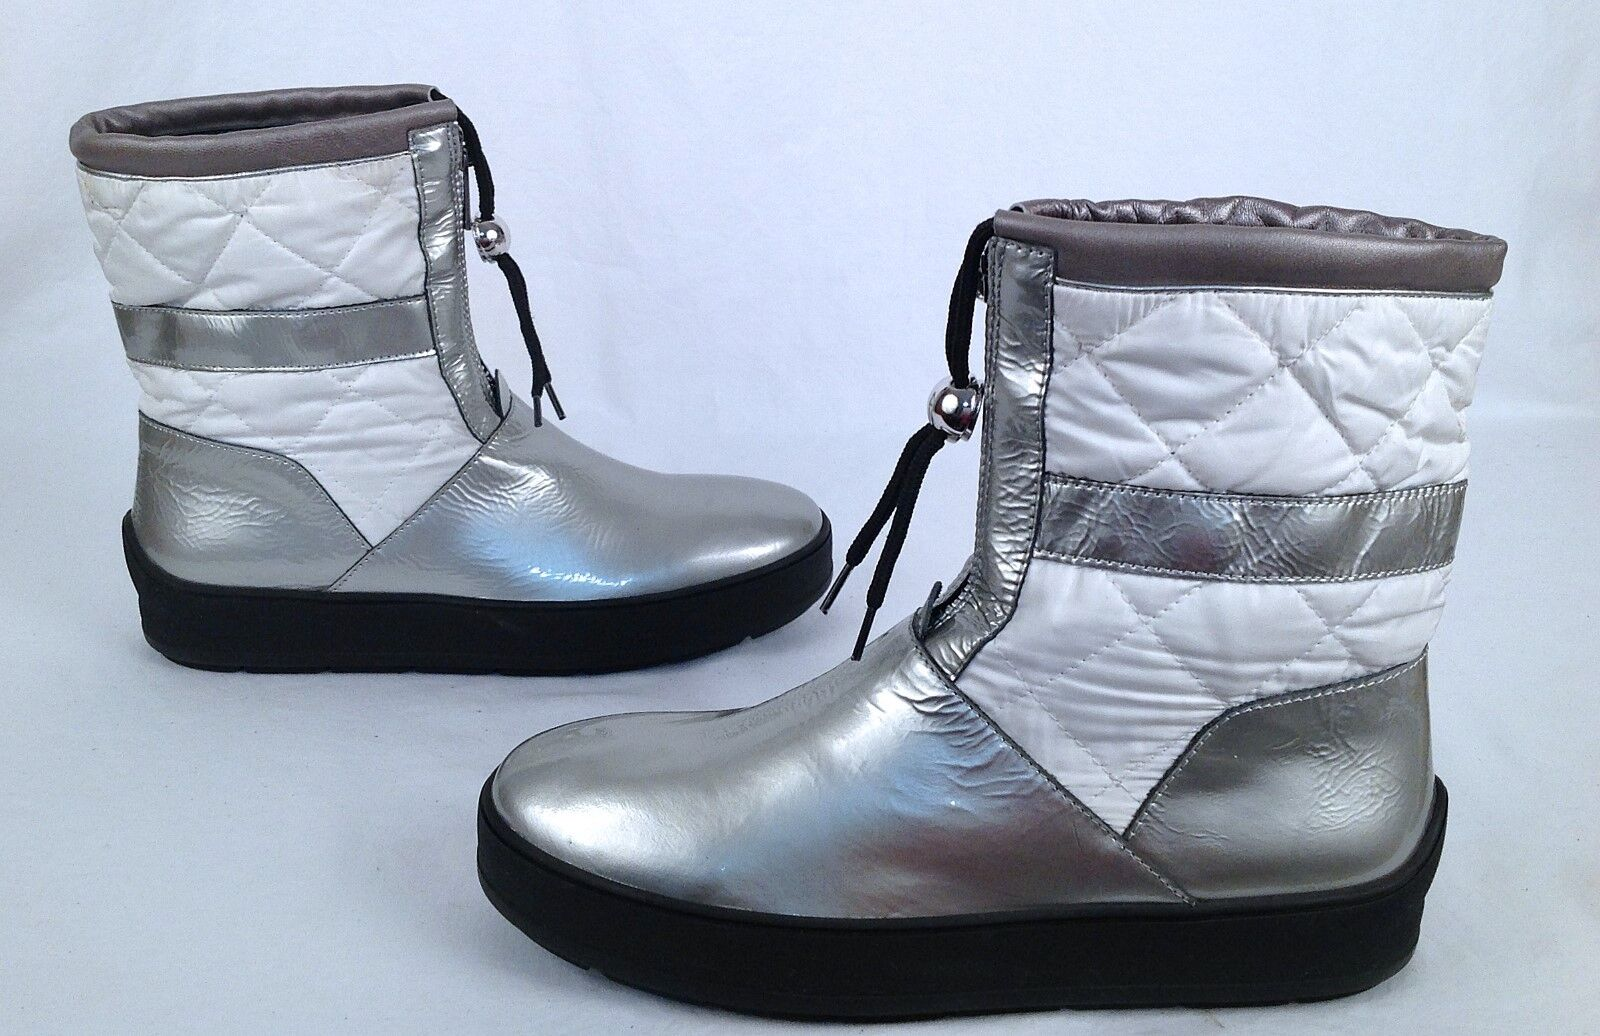 New  Aquatalia 'Kali' White Patent Leather  Quilted Snow Booties-Size 9 M (P17)